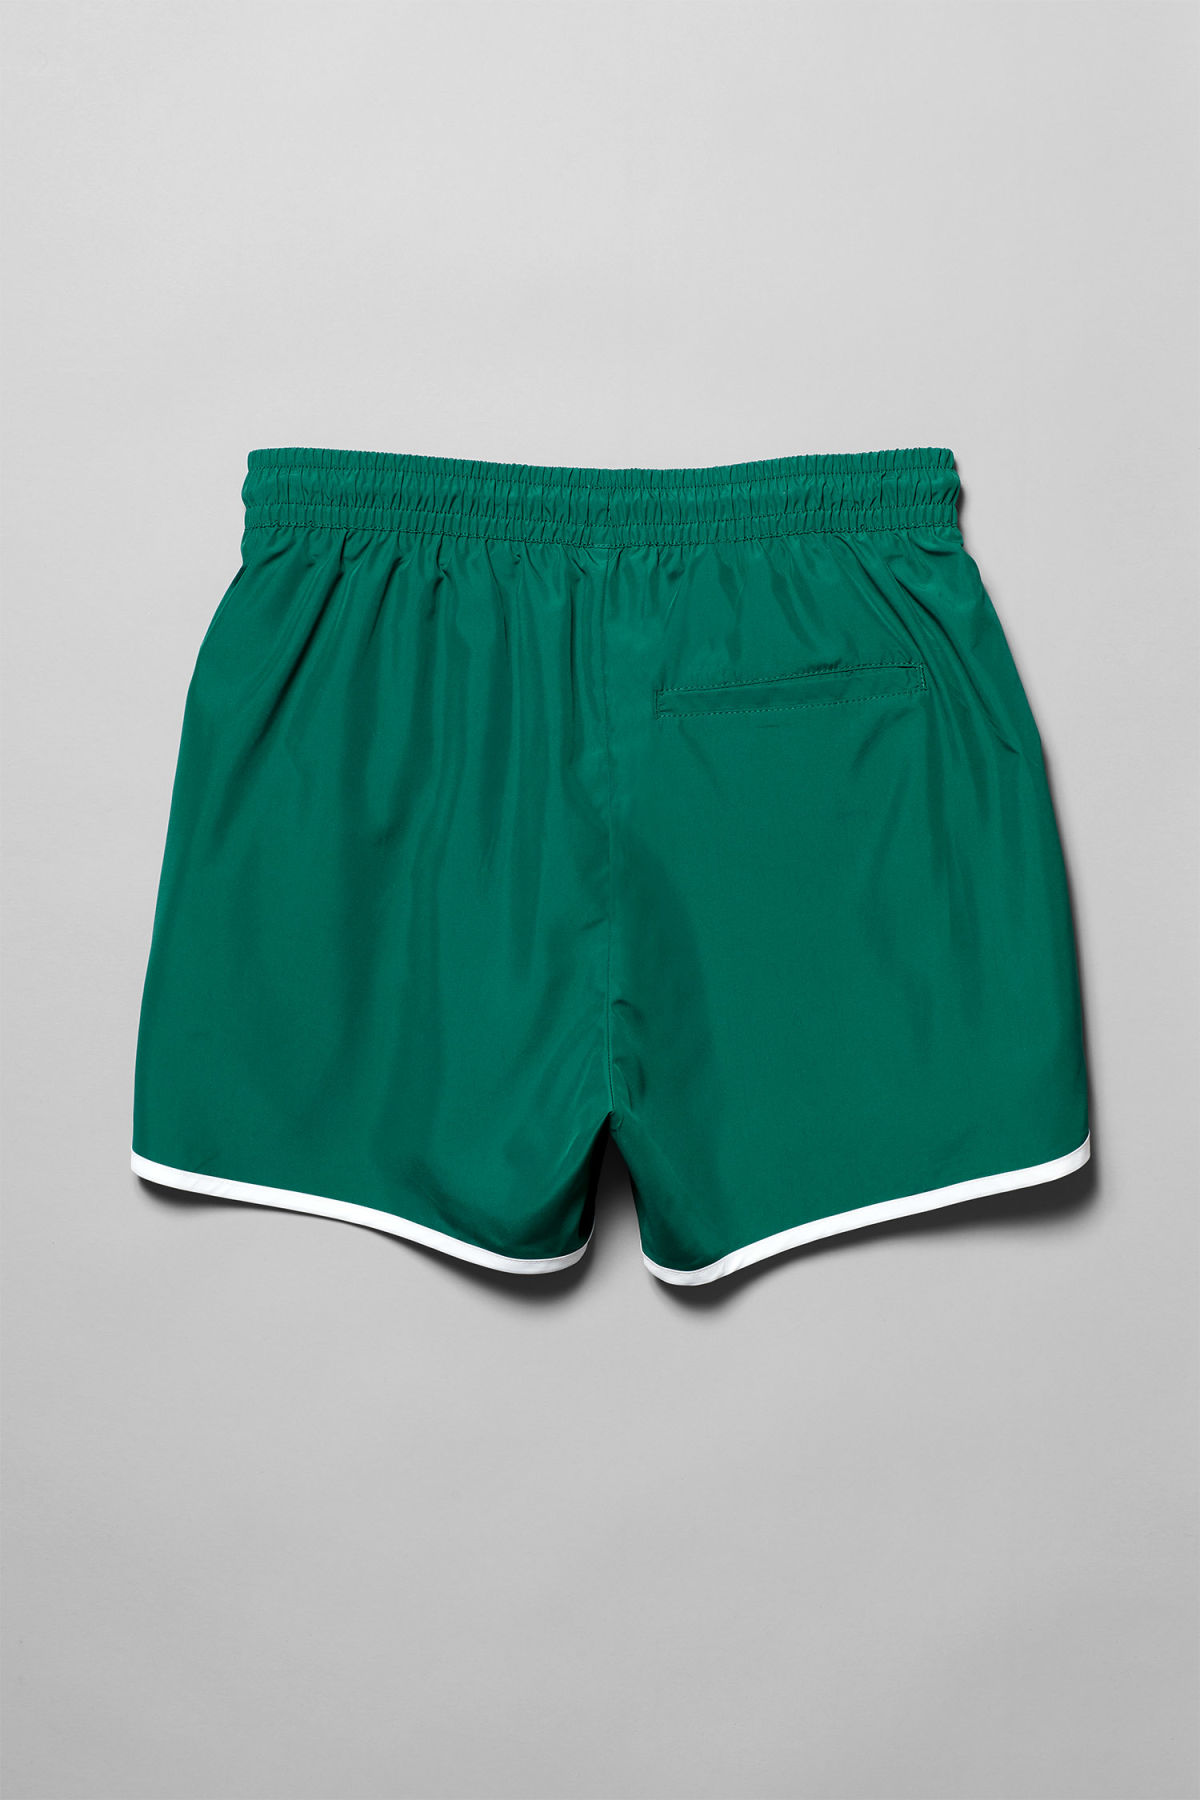 Back image of Weekday tan swim shorts  in green